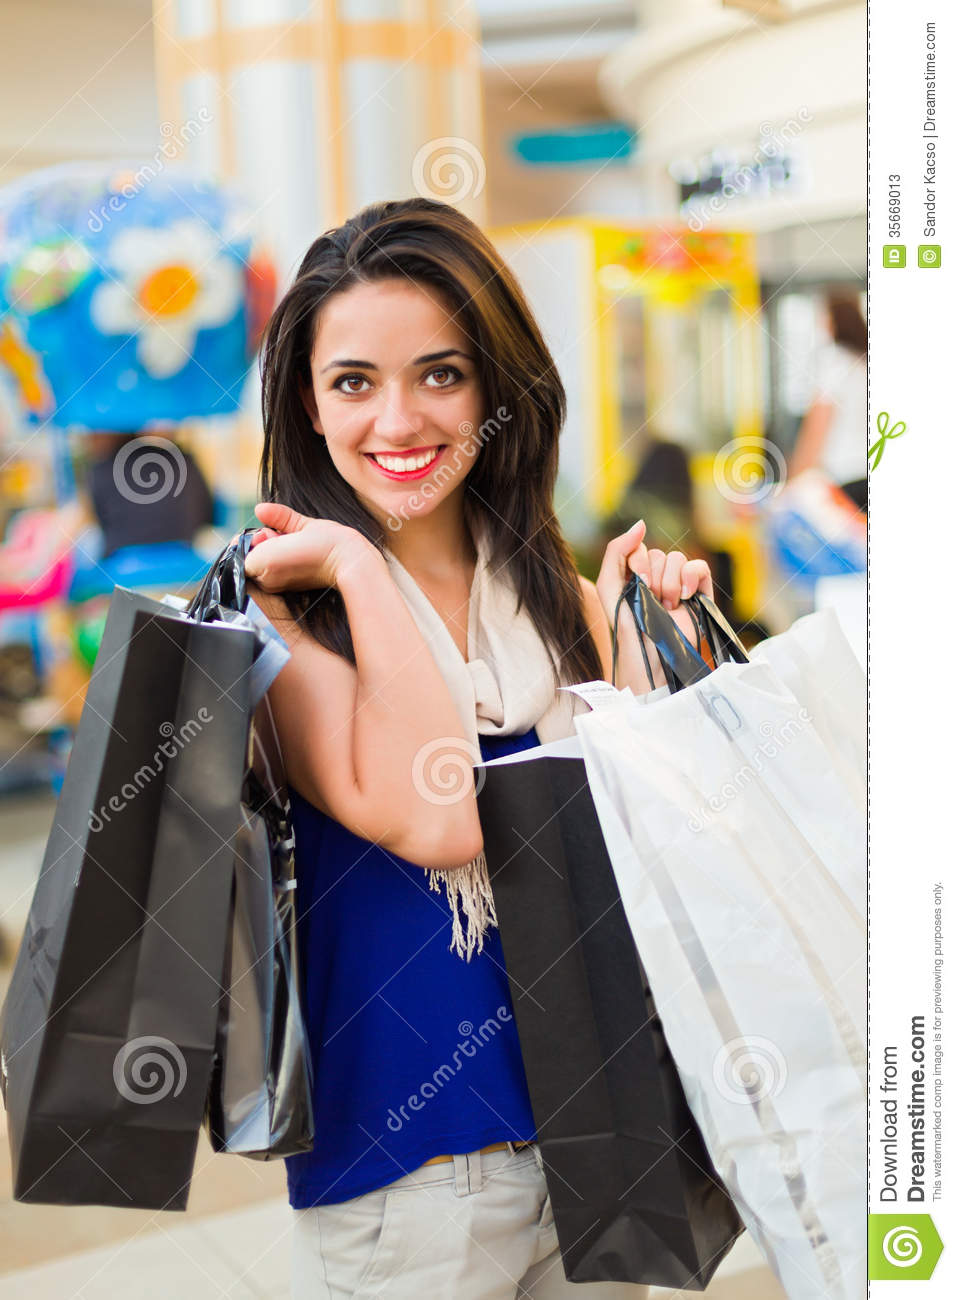 Shopping In Mall Stock Photos Image 35669013